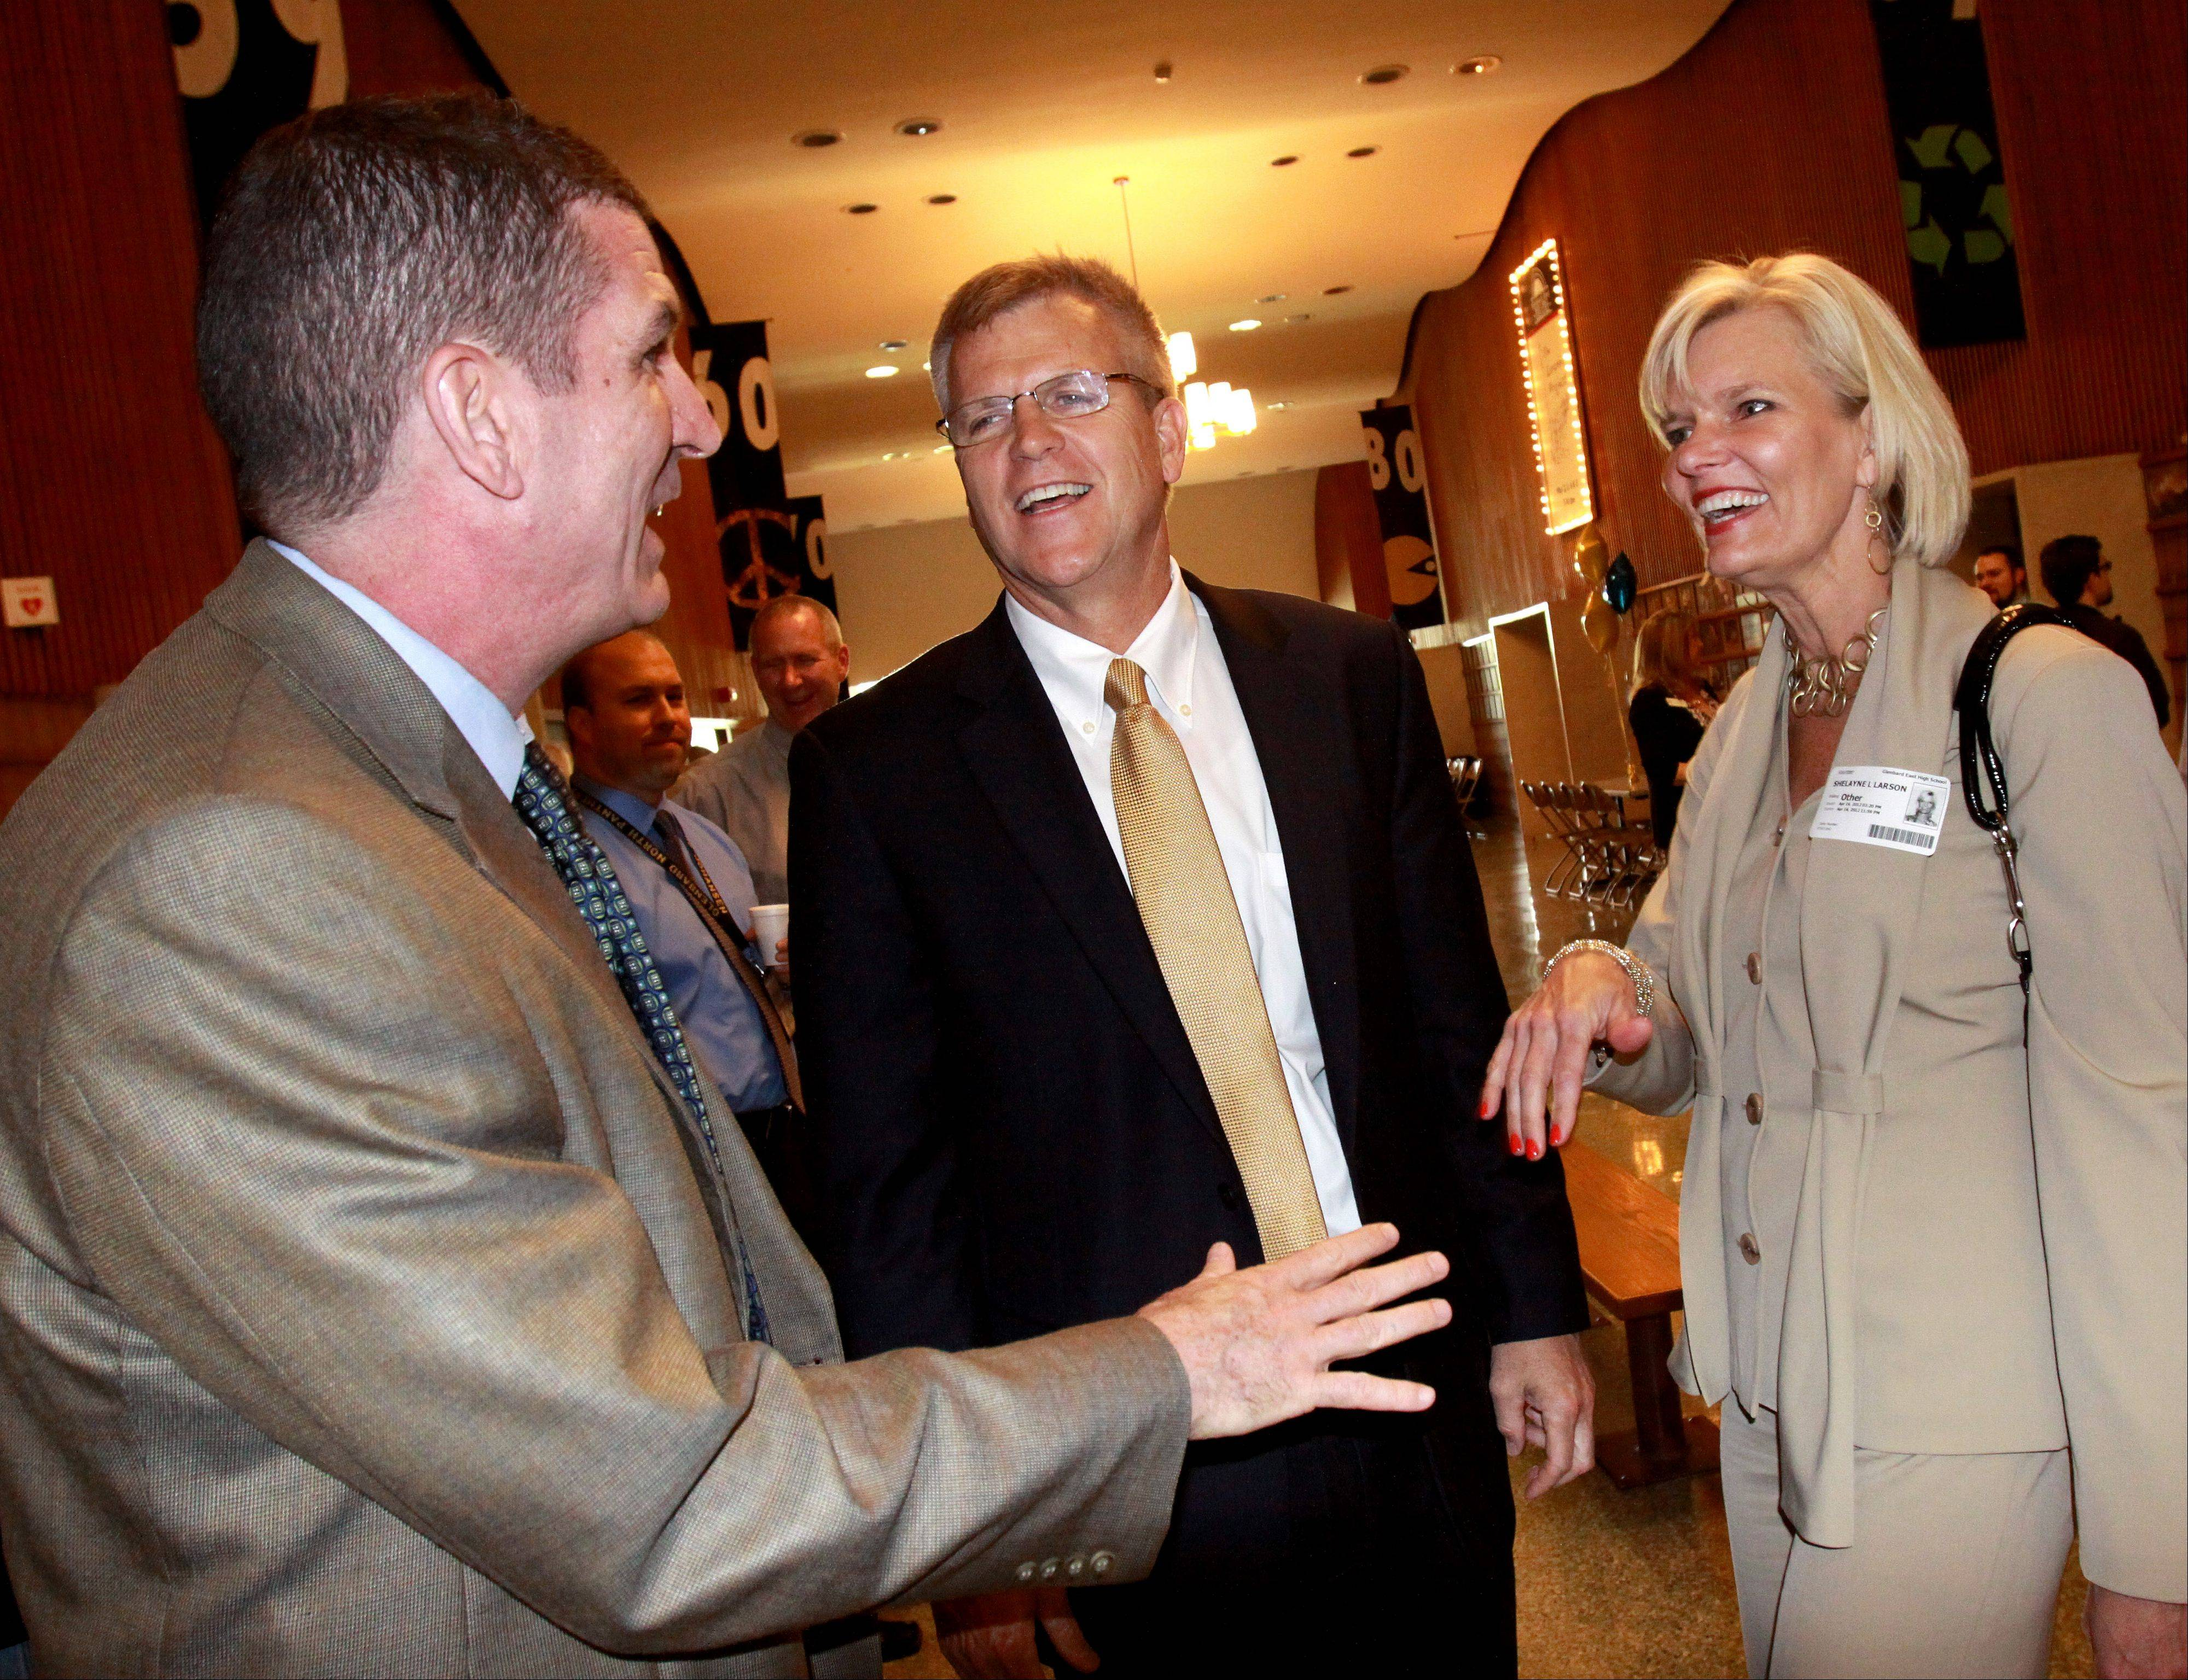 Peter Monaghan, left, assistant principal for student services at Glenbard West, greets new Glenbard District 87 Superintendent David Larson, with his wife Shelayne Larson, at a meet-and-greet reception Monday at Glenbard East in Lombard.